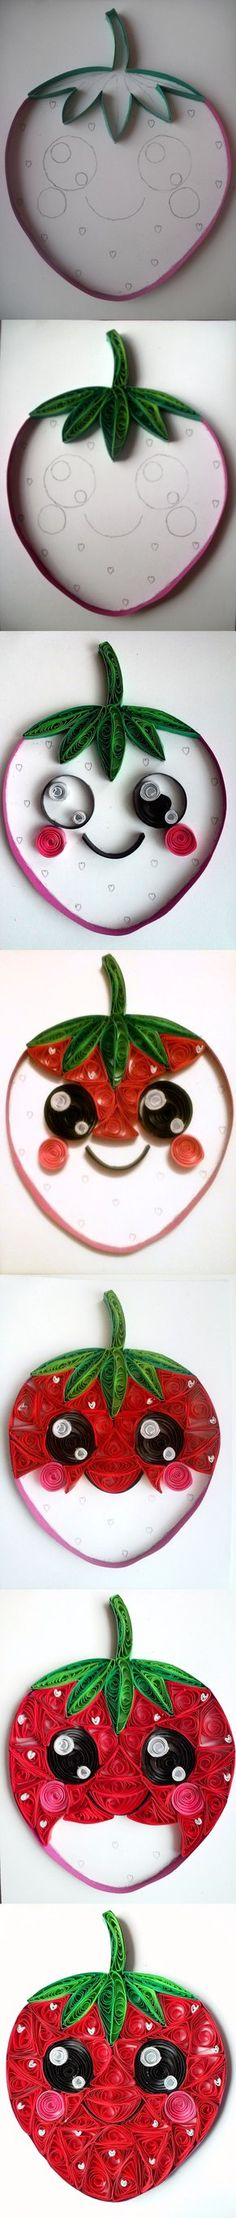 Quilling - Strawberry (step by step) by RzymonZPapieru.deviantart.com on @DeviantArt